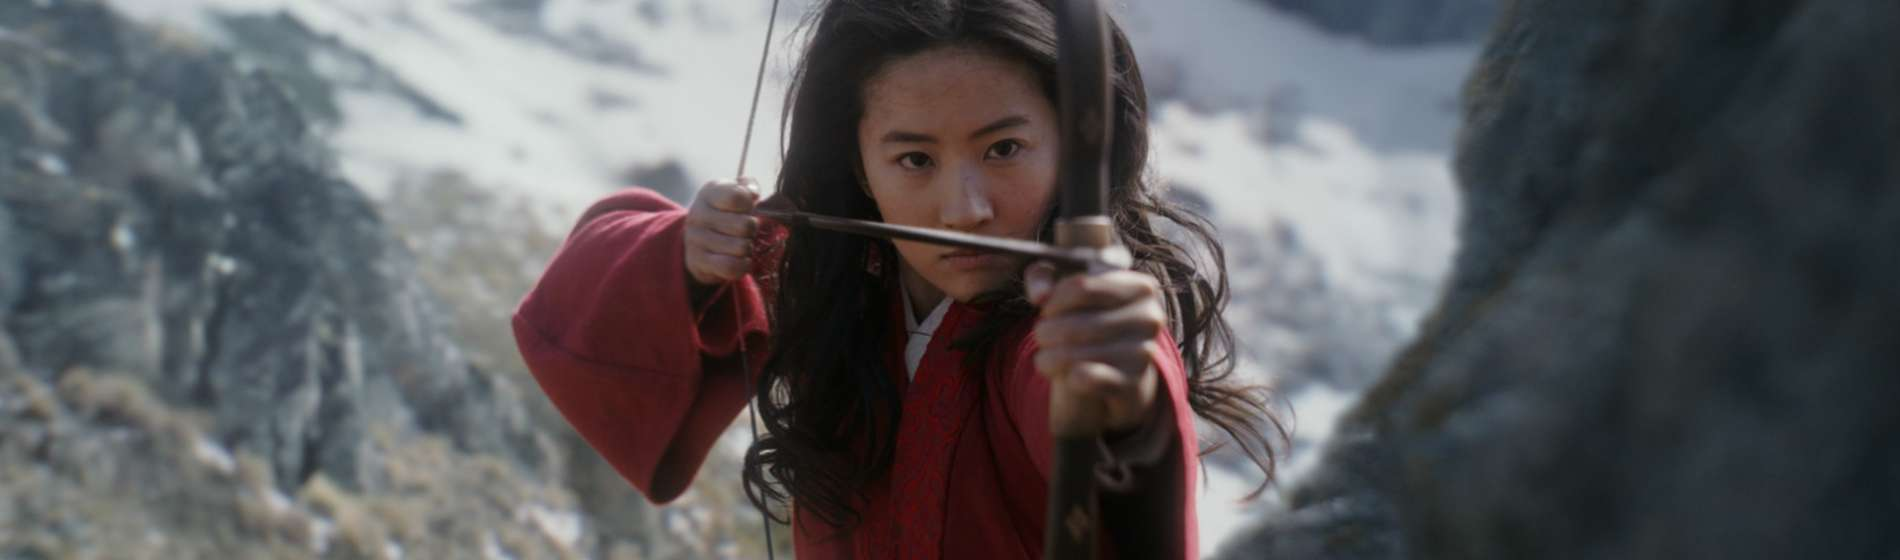 Mulan-Bow-and-Arrow-Feature-Image